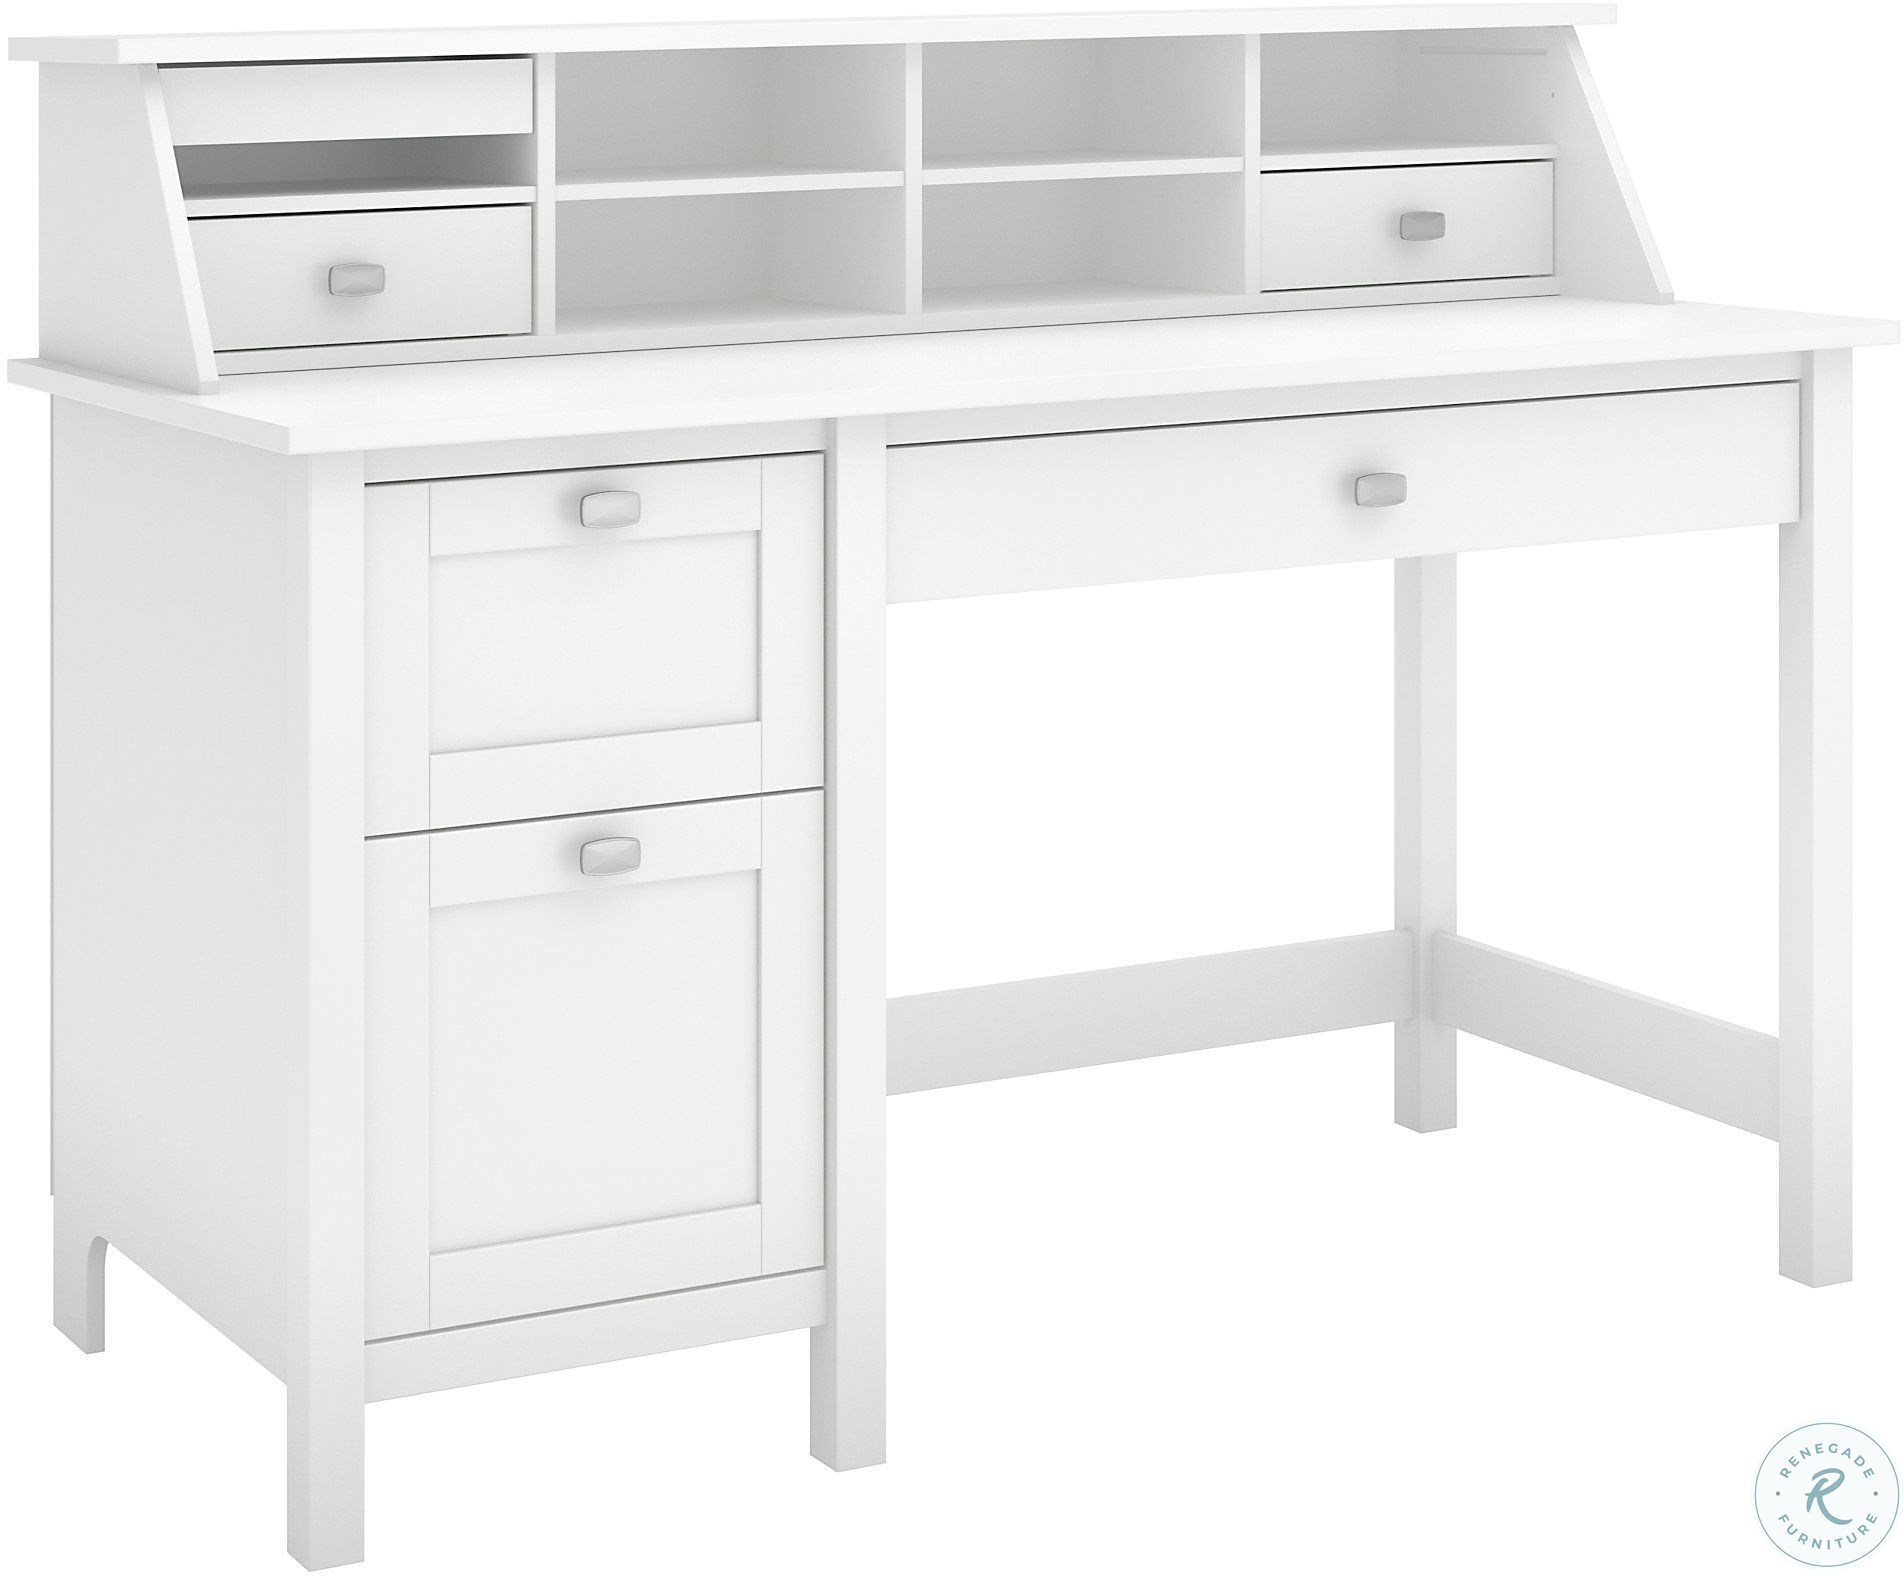 Broadview Pure White Computer Desk With 2 Drawer Pedestal And Organizer From Bush Furnitureetc Com Bd005wh